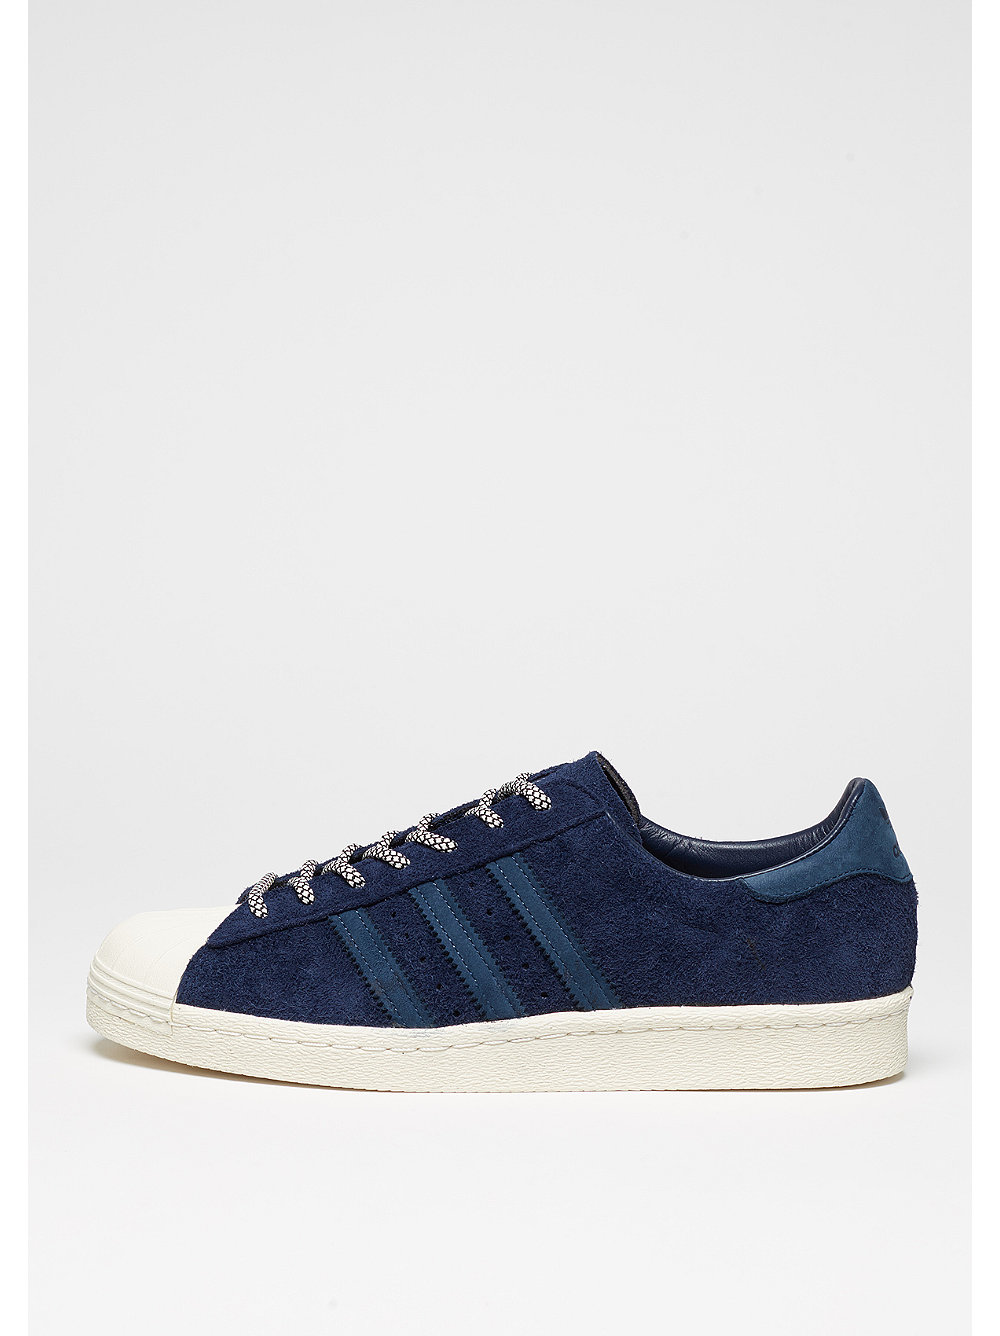 adidas Superstar 80s collegiate navy-mineral blue